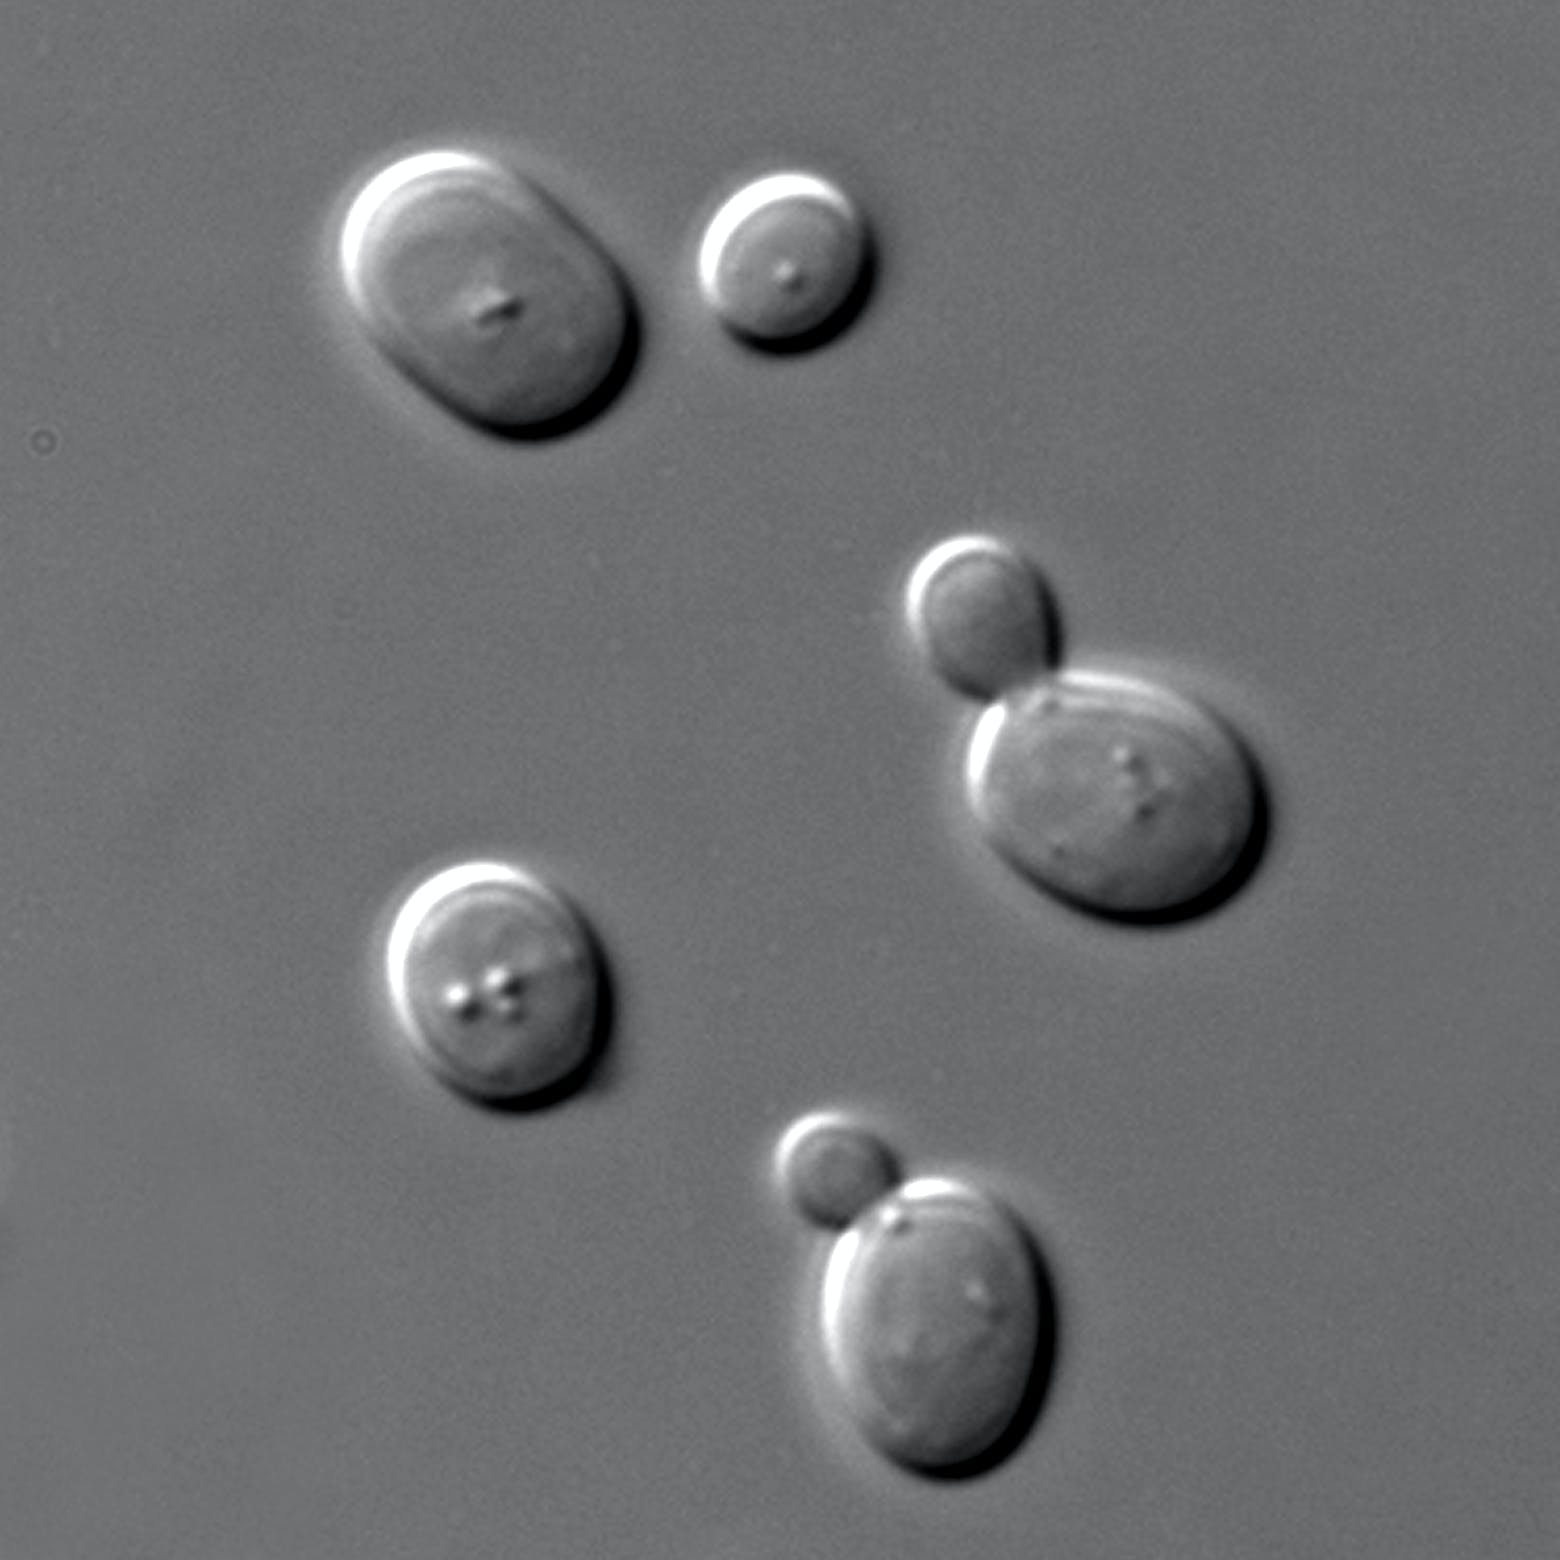 Single celled yeast seen under a microscope.